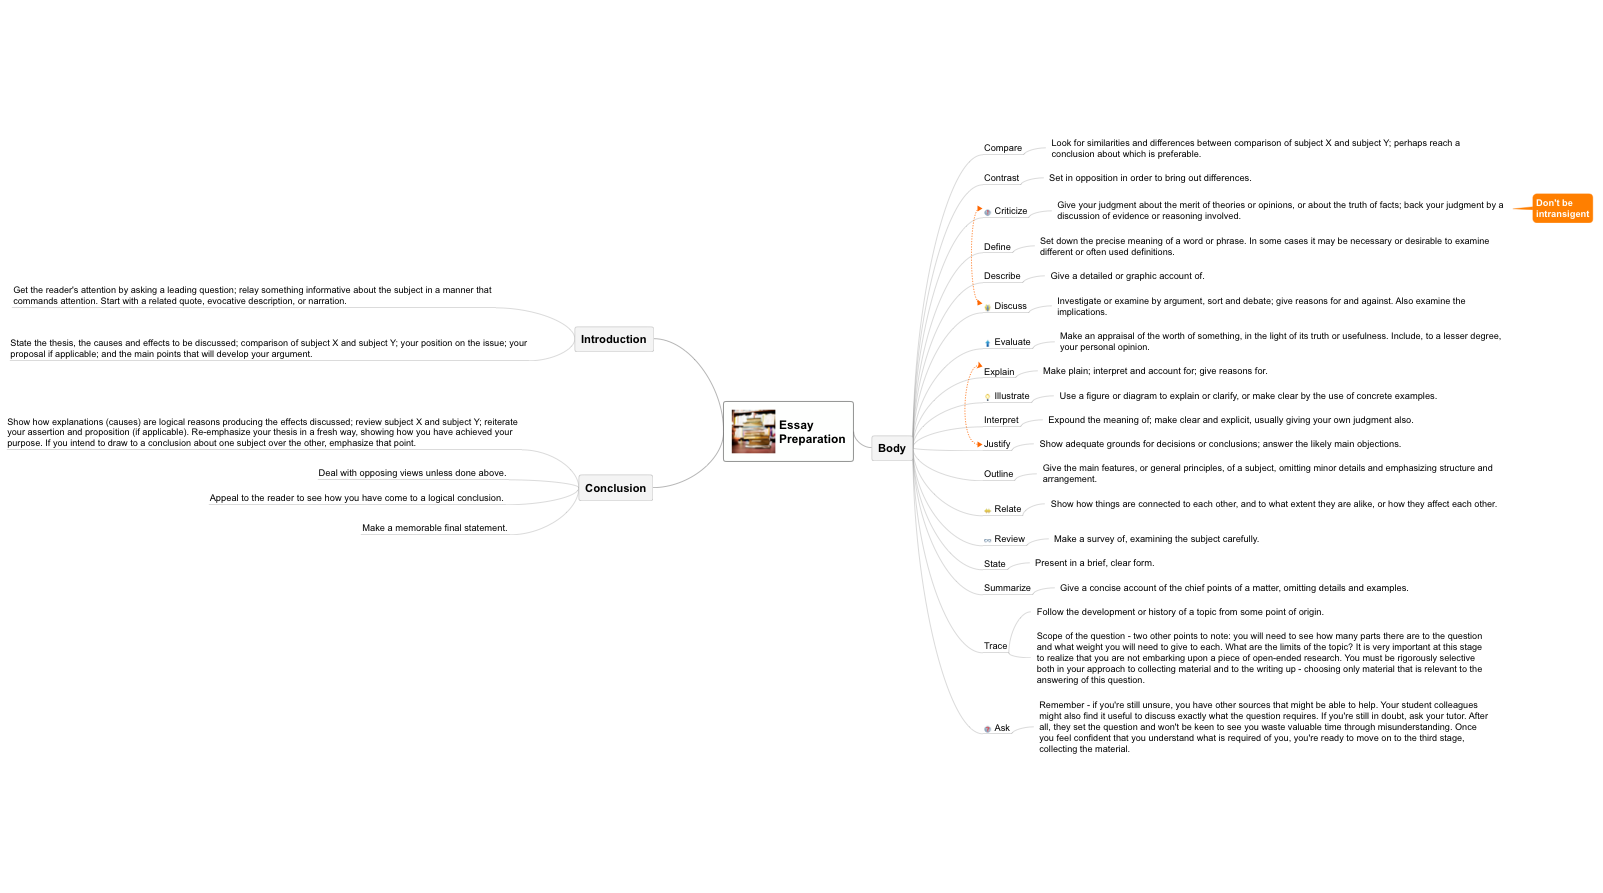 MINDMAP — Essay Preparation